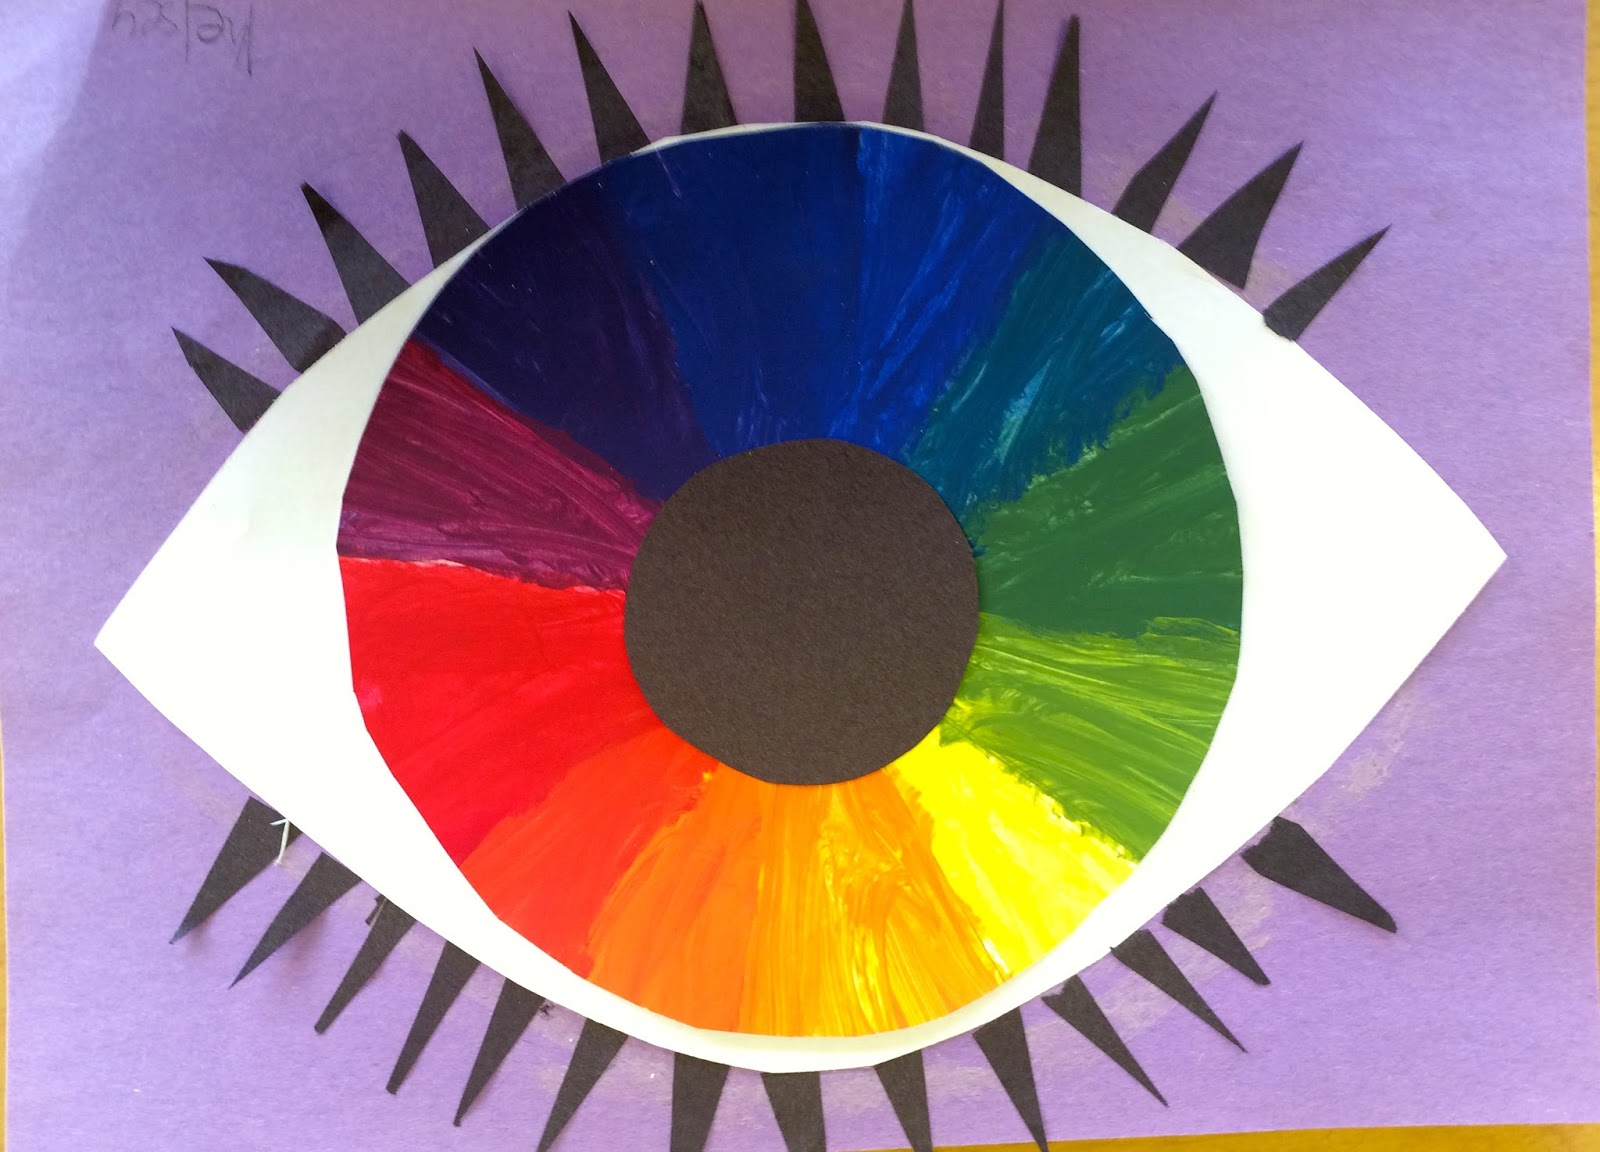 It Wouldnt Be Art Class Without The Good Ol Color Wheel 6th Grade First Was Spent Drawing And Dividing Into 12 Even Sections